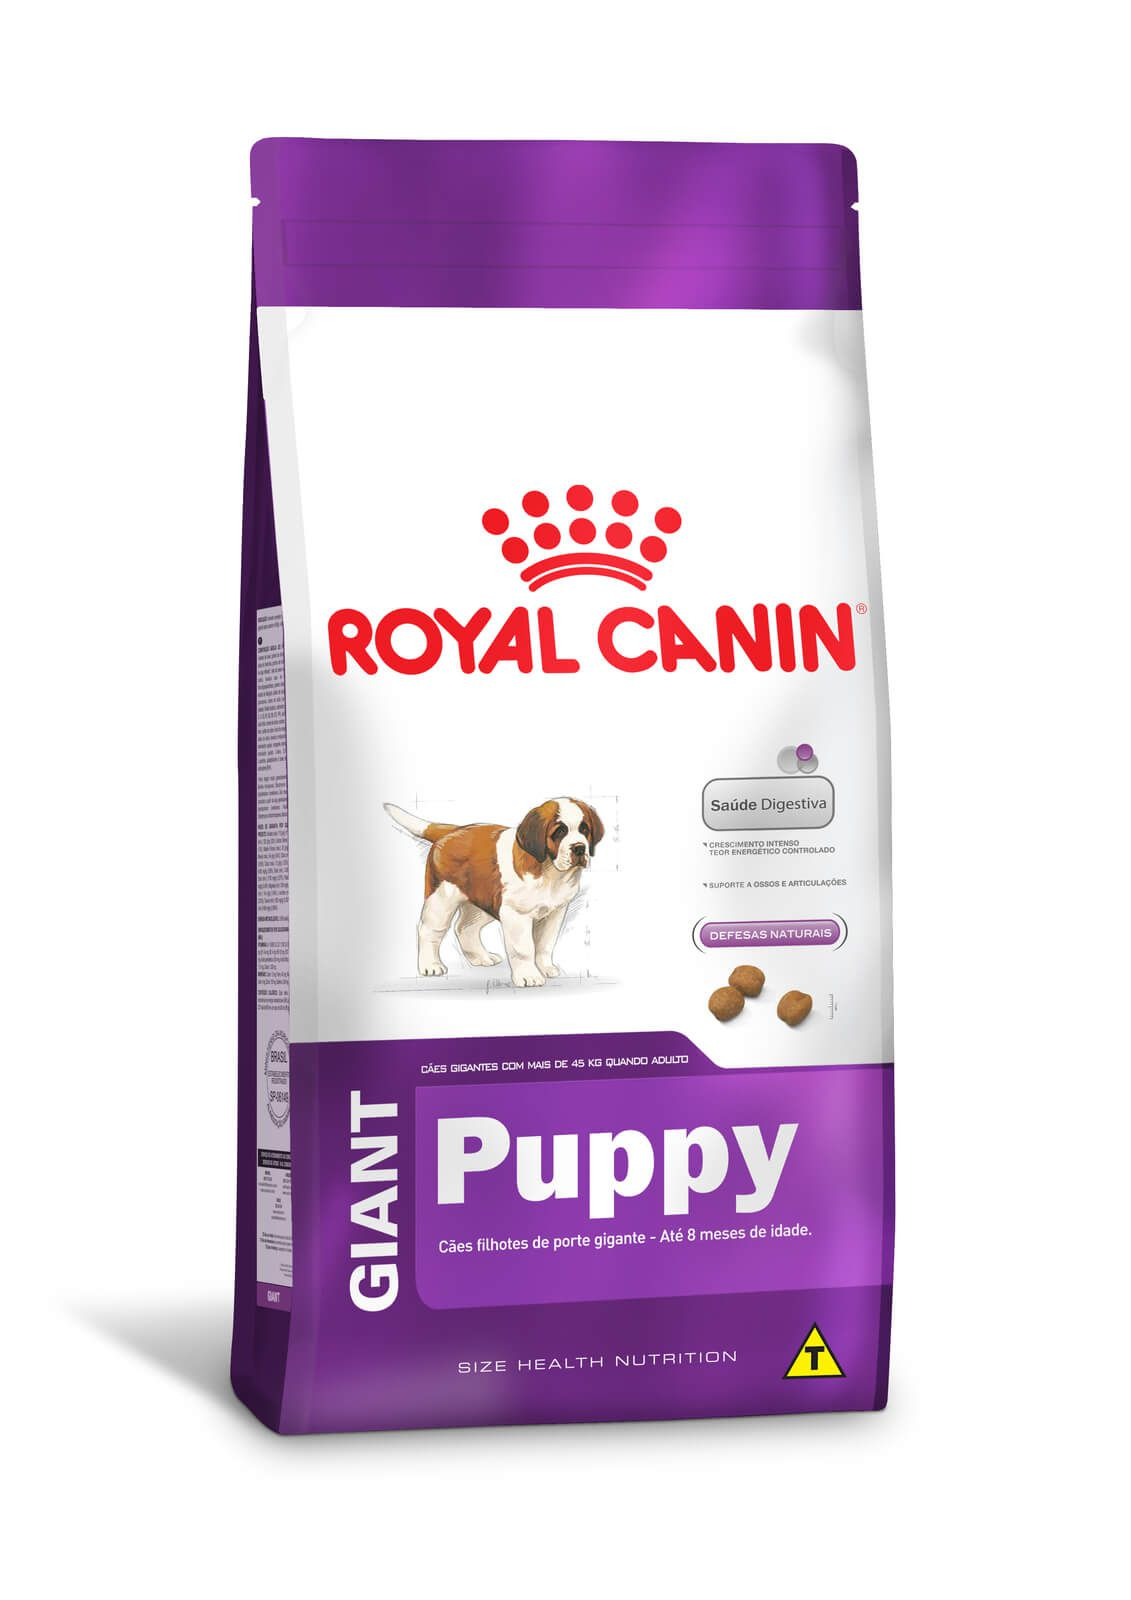 Royal Canin Giant Puppy - 15kg